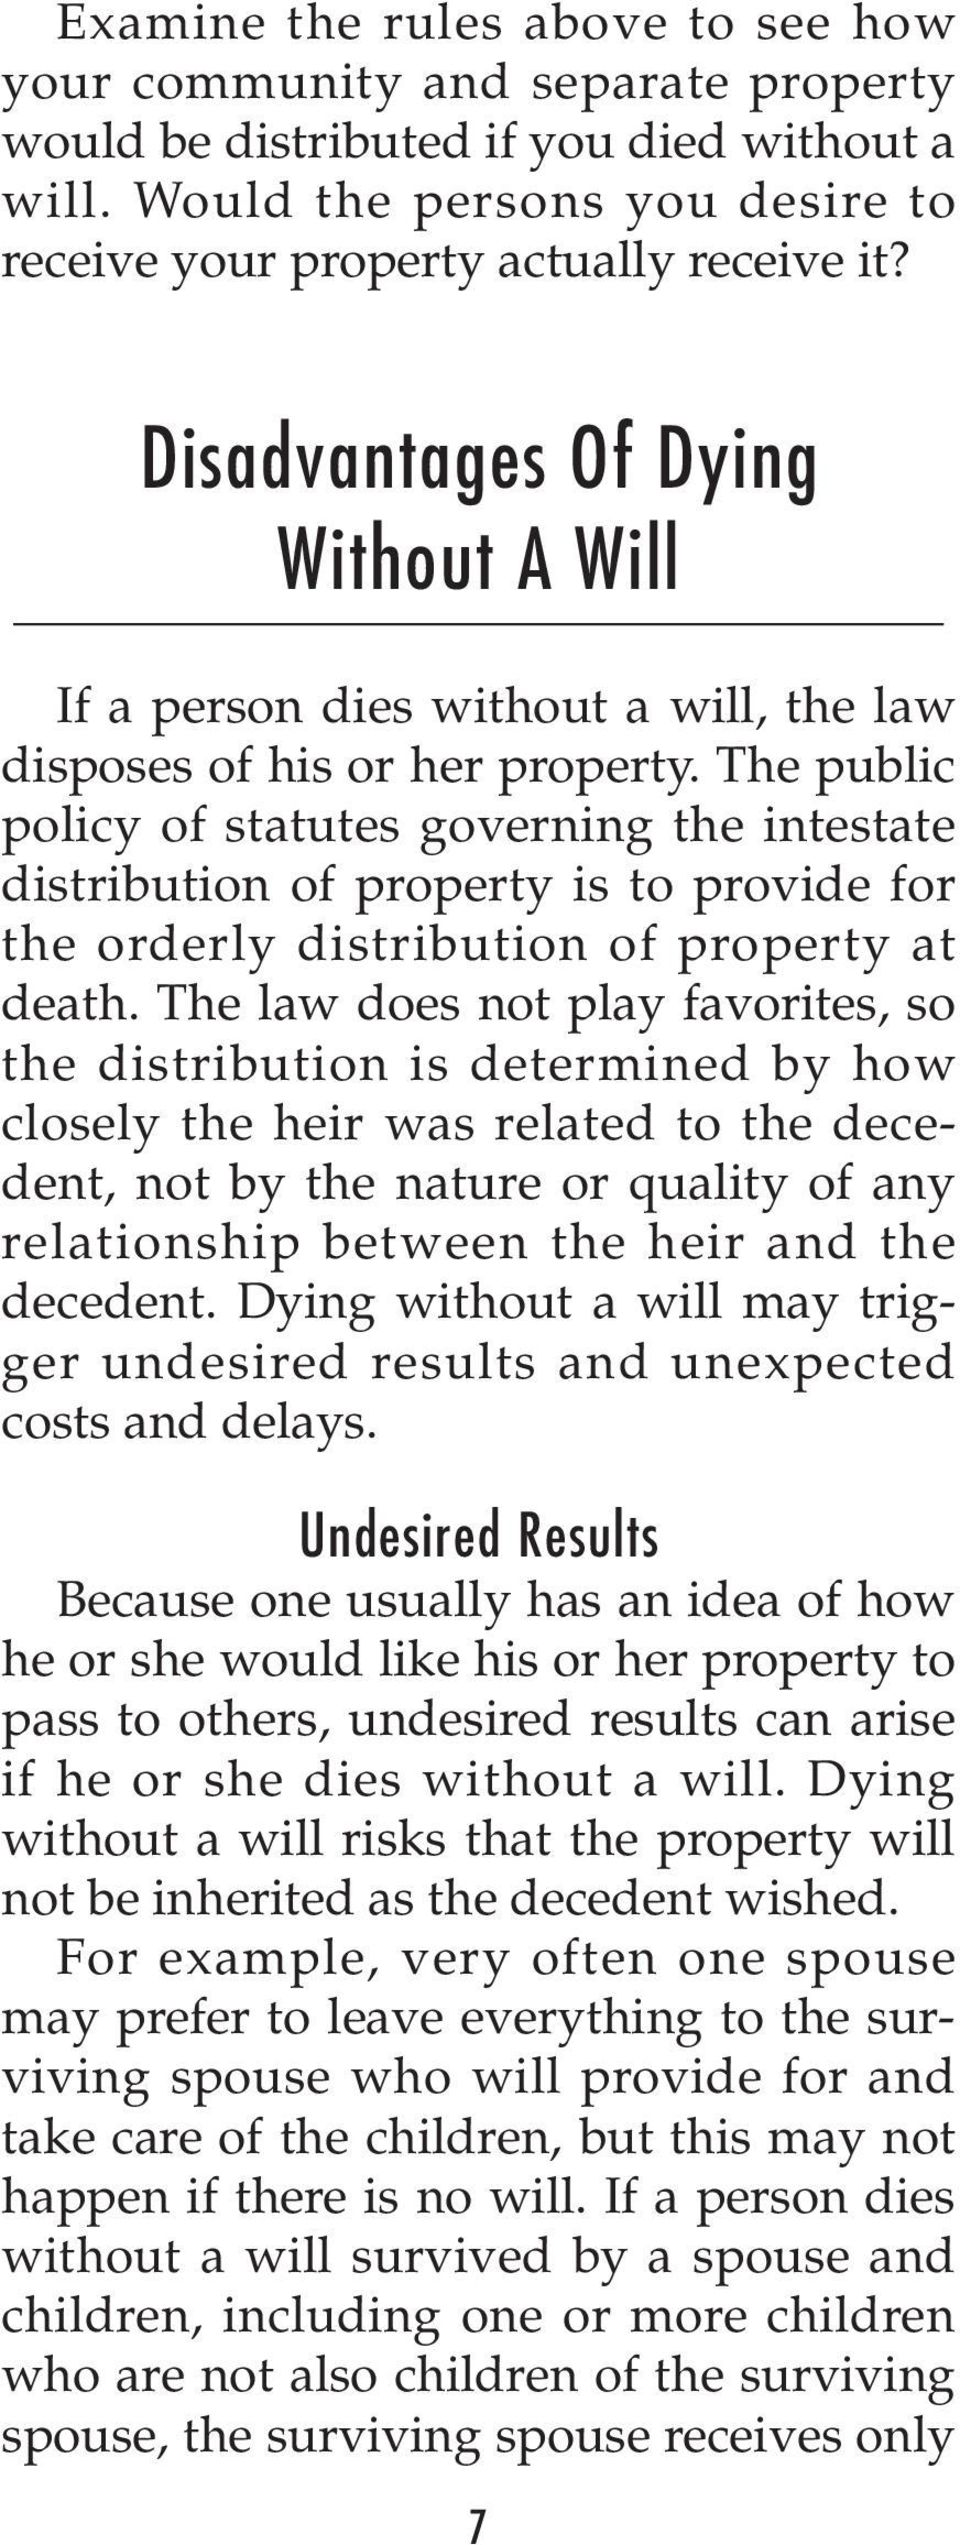 The public policy of statutes governing the intestate distribution of property is to provide for the orderly distribution of property at death.